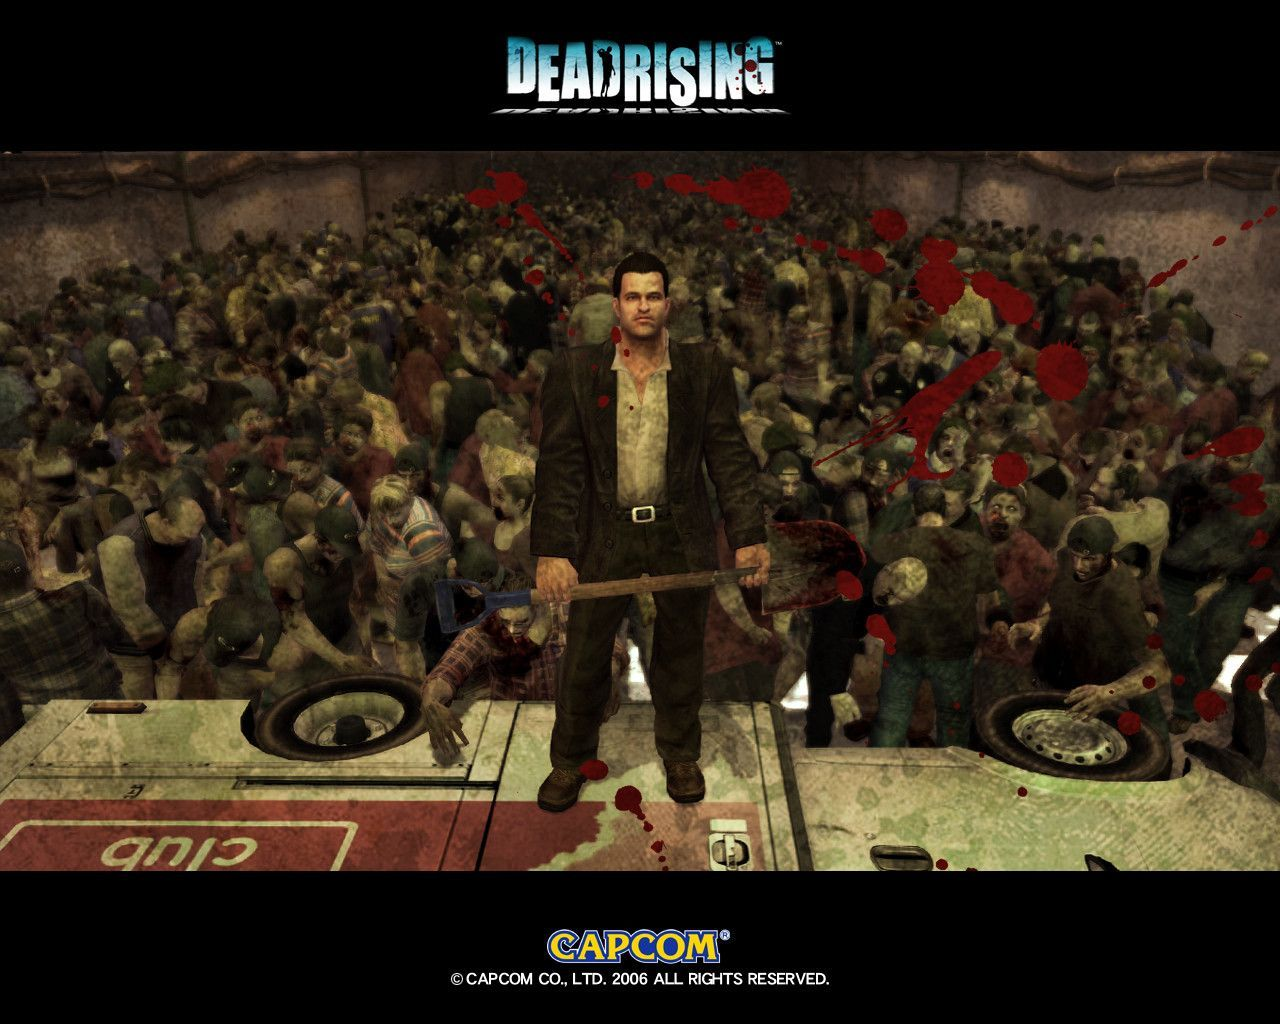 Dead Rising Wallpapers - Wallpaper Cave